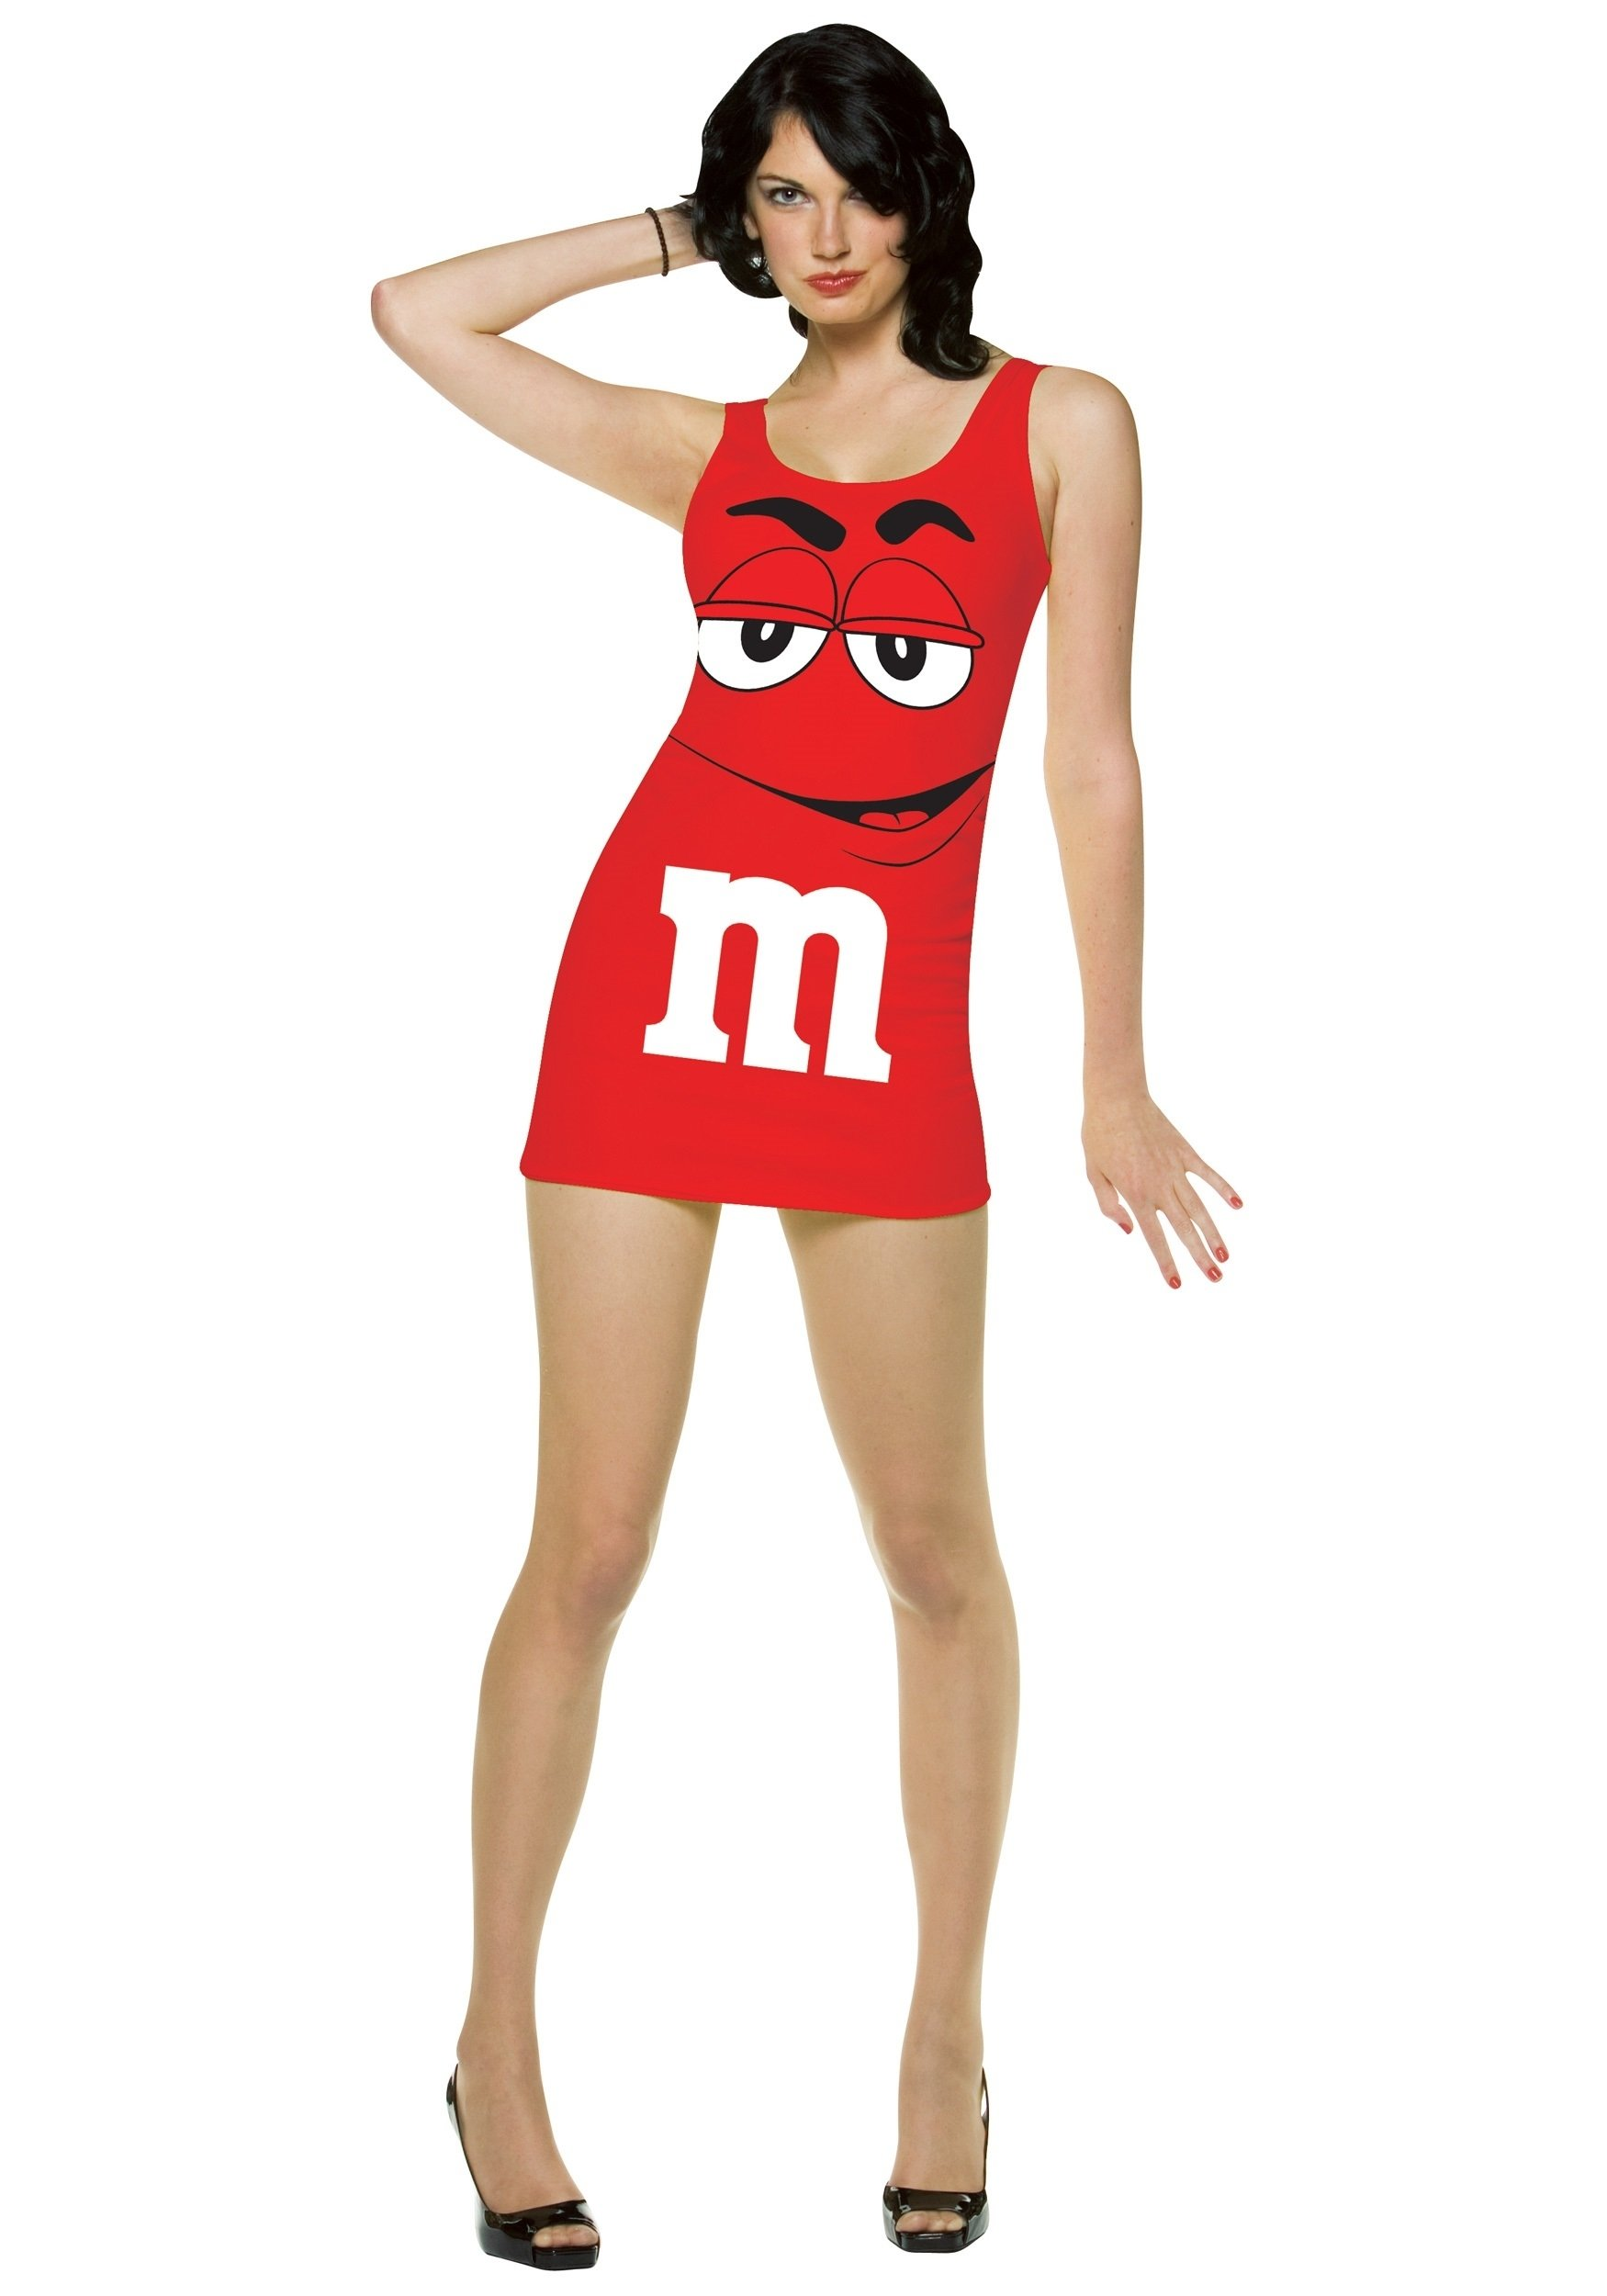 10 Wonderful Cheap Sexy Halloween Costume Ideas red sexy mm costume ladies halloween mms costumes 2020